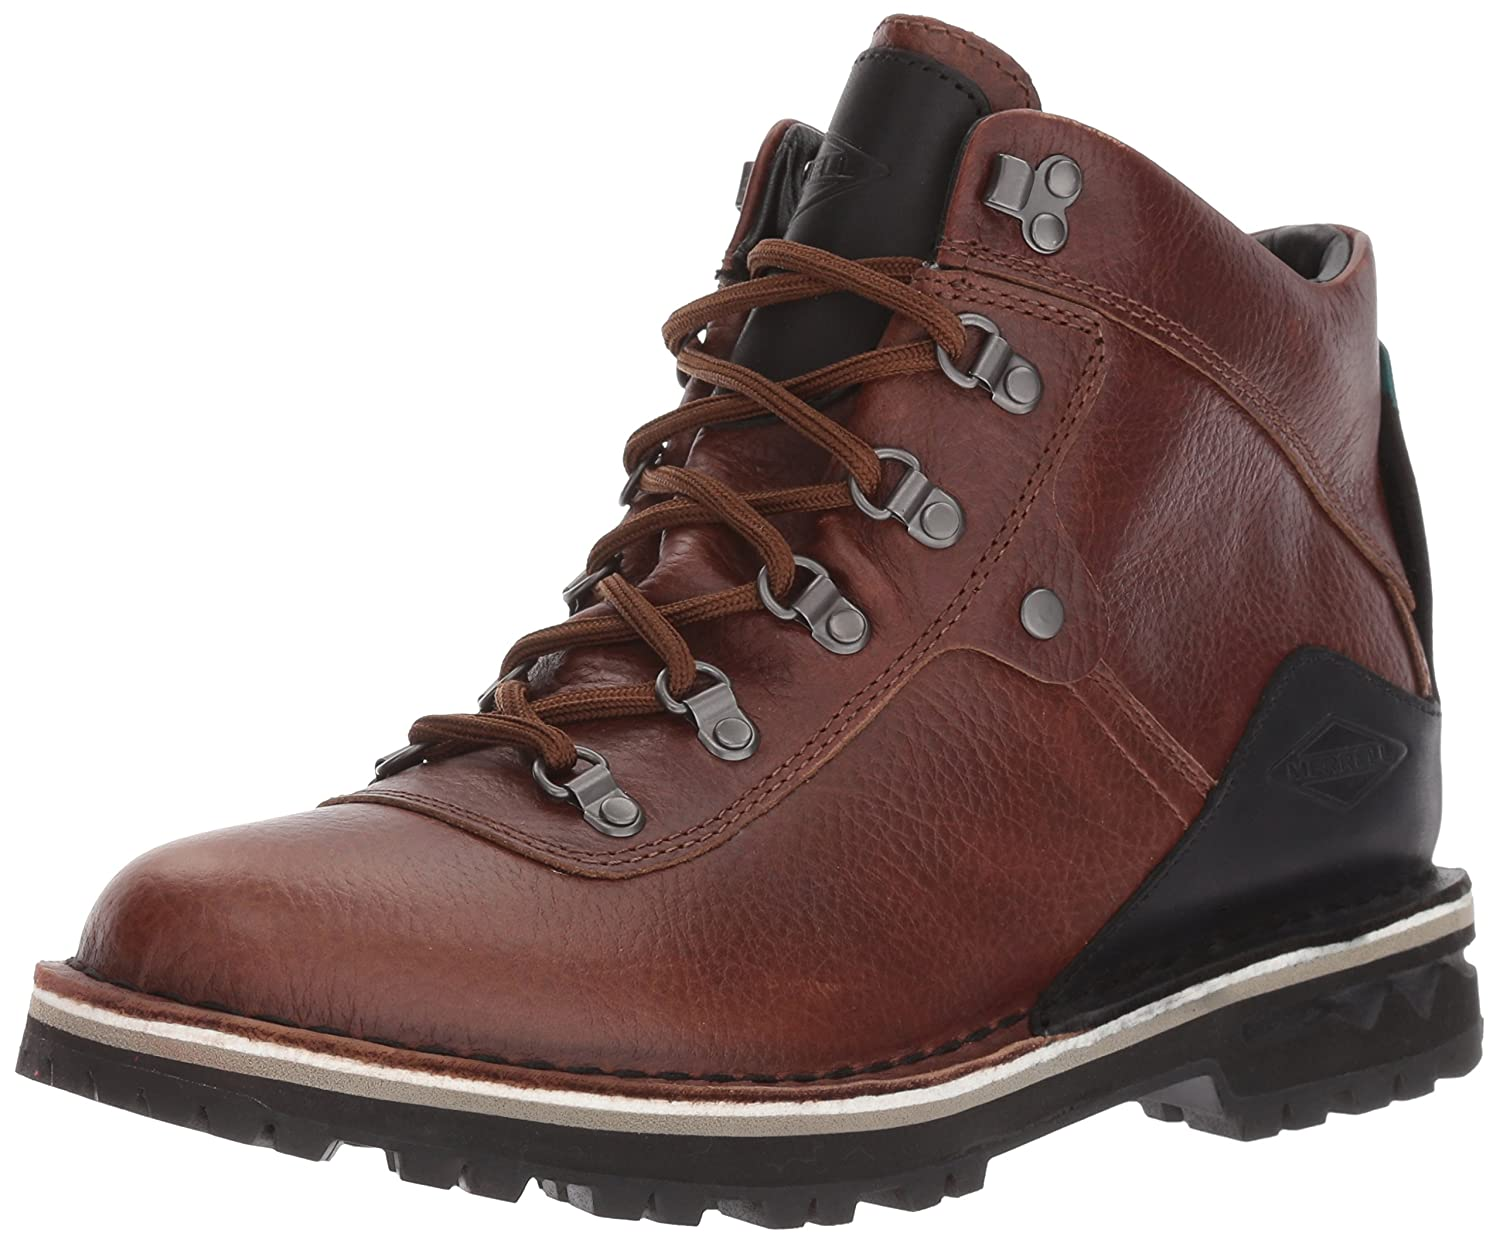 Merrell Women's Sugarbush Refresh Waterproof Hiking Boot B01MTC4I9U 6 B(M) US|Dark Earth